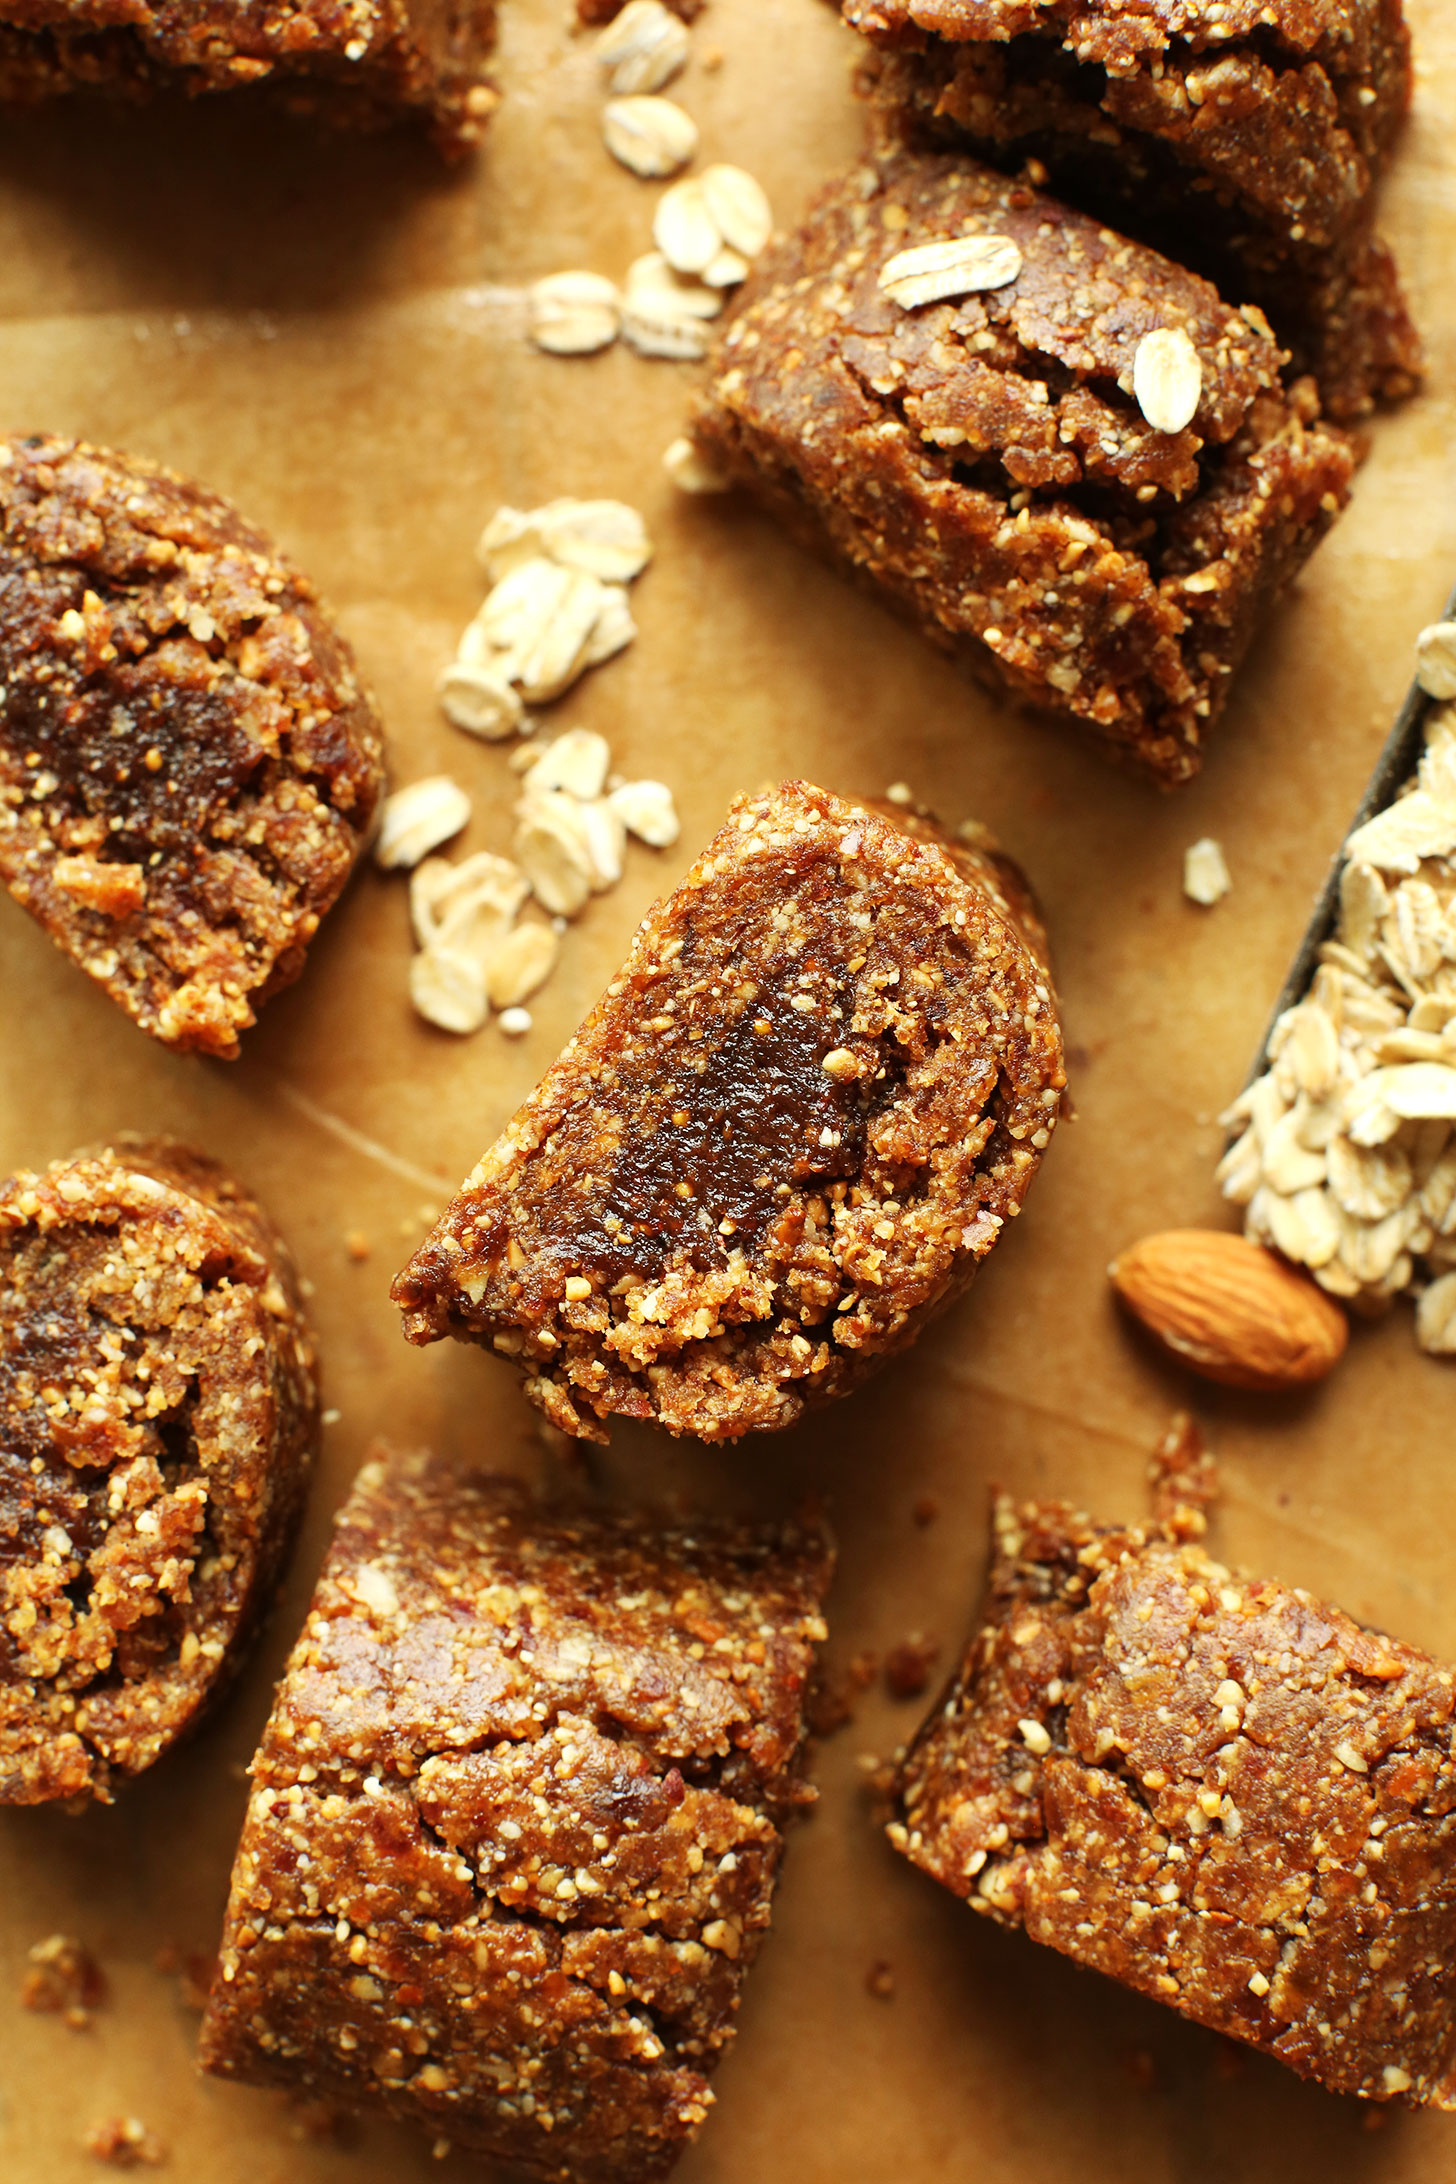 Squares of our Easy Healthy Fig Newtons recipe made with dates, nuts, oats, and figs